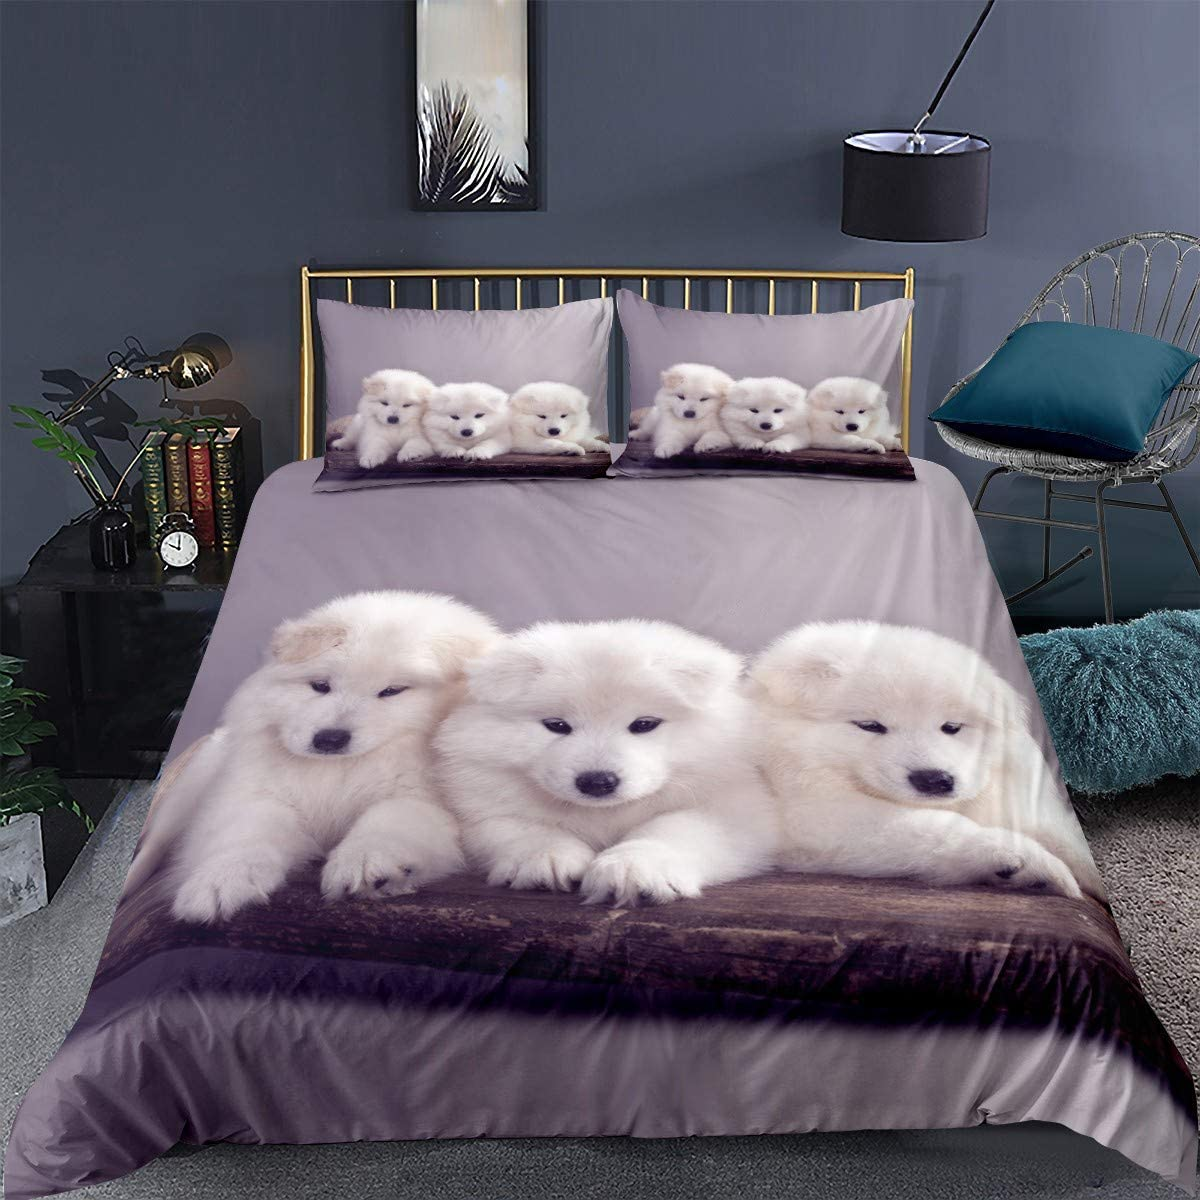 Erosebridal Blck Dog Bedding Set Twin Size Kids Black Puppy Duvet Cover Set 3D Animal Theme Comforter Cover Cute Dog Pattern Decor Bedspread Cover for Kids Teens Boys Black Dog Quilt Cover